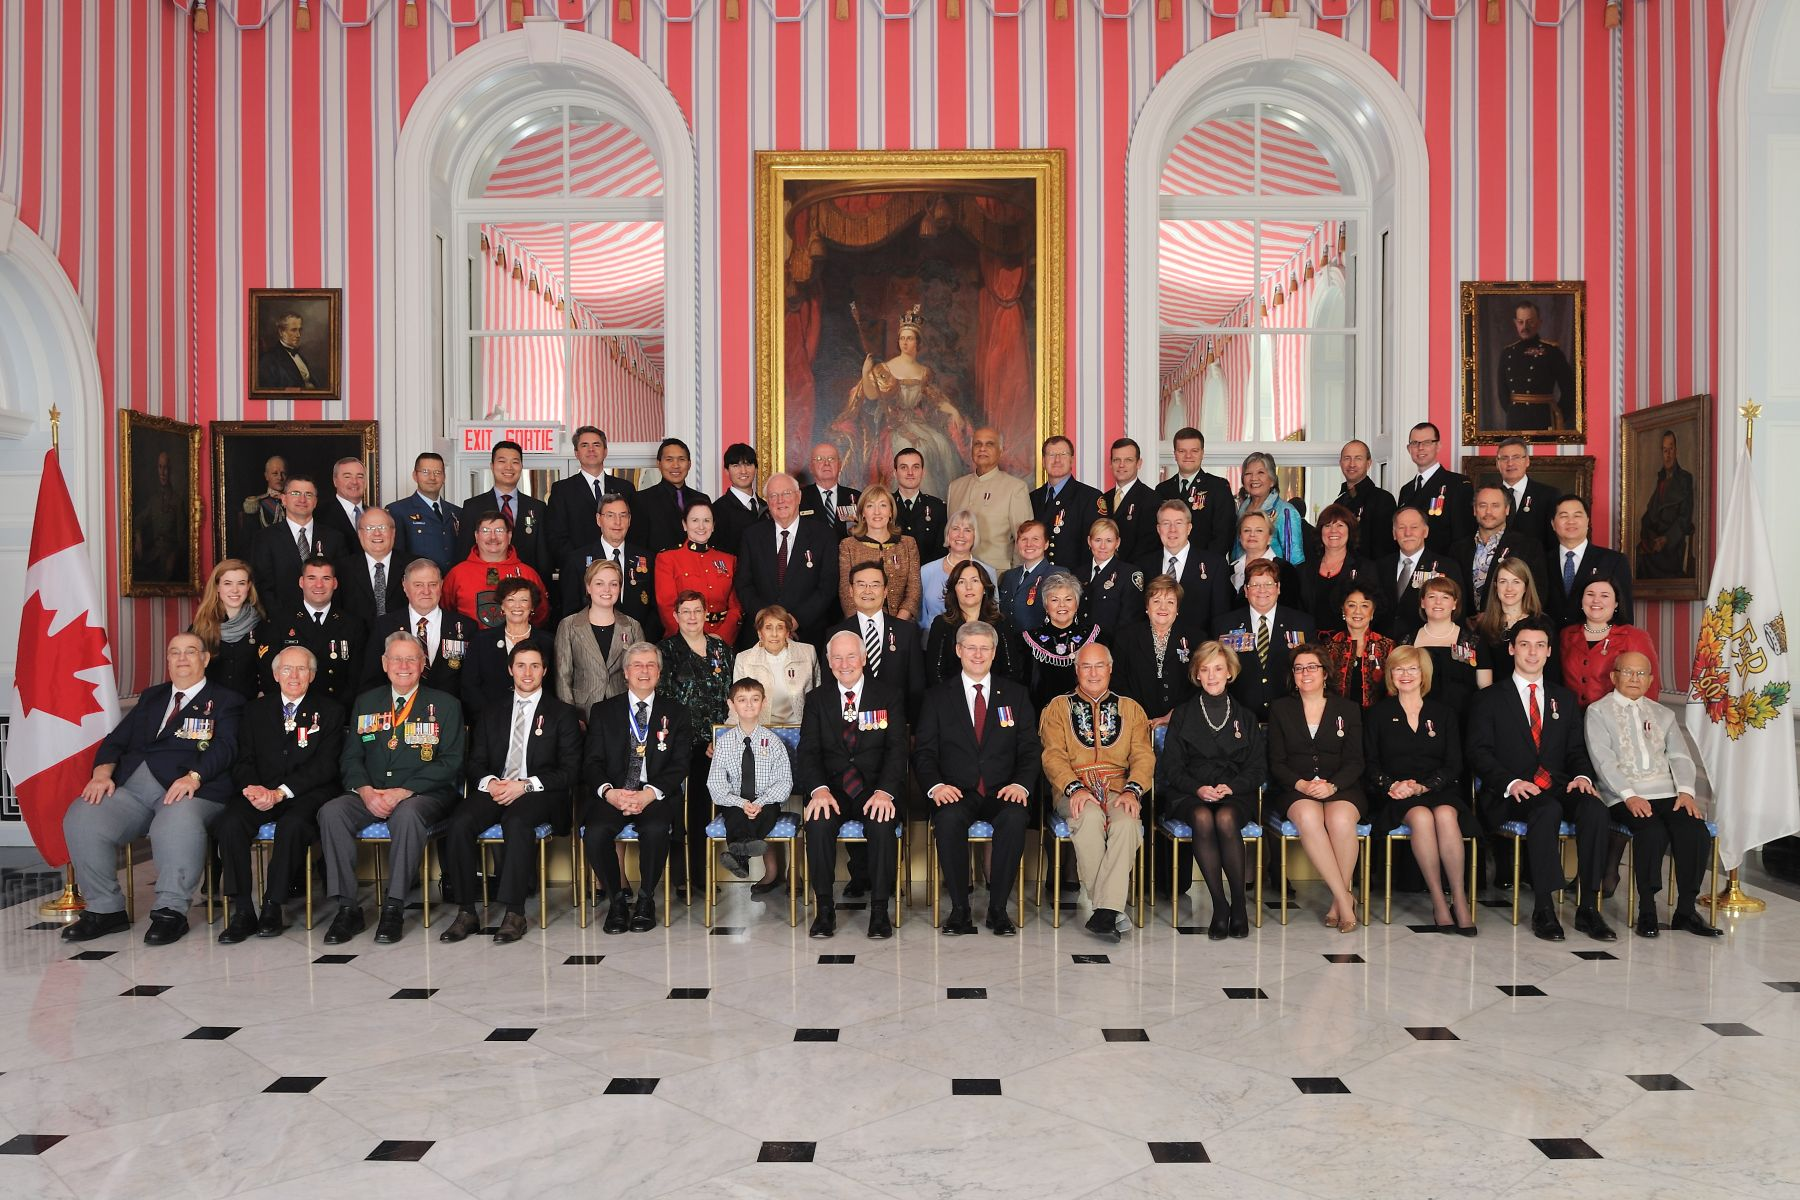 His Excellency the Right Honourable David Johnston, Governor General of Canada, and the Right Honourable Stephen Harper, Prime Minister of Canada, are pictured with the 60 recipients who were presented with the Diamond Jubilee Medal.